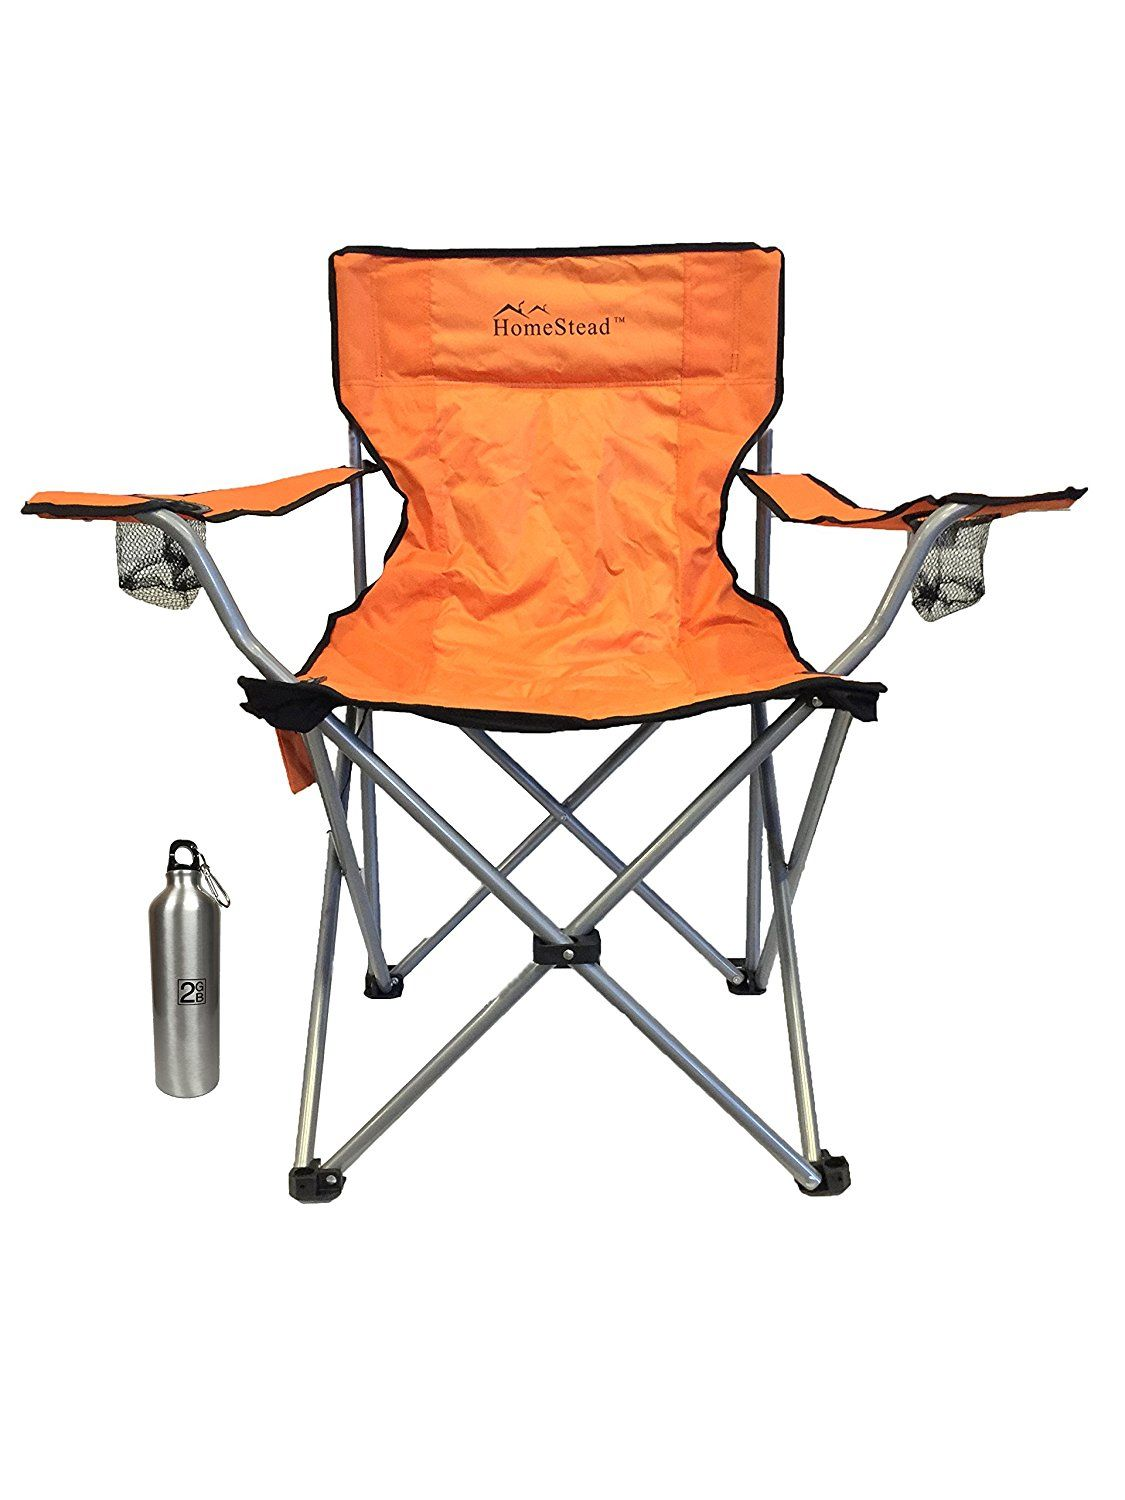 Heated Folding Chair by HomeStead with Bonus Water Bottle